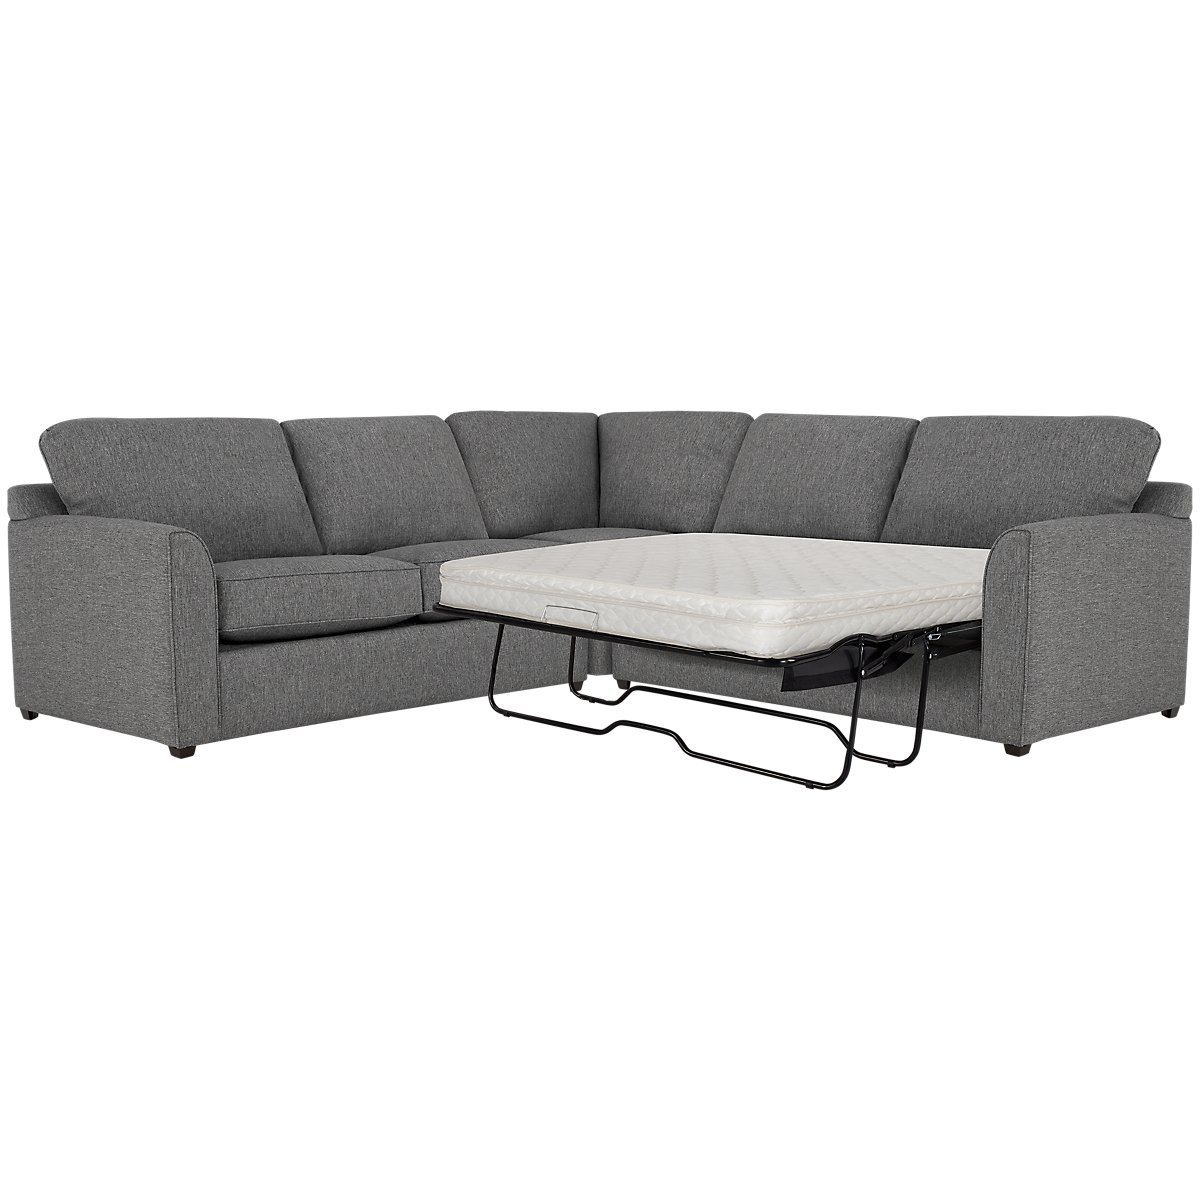 Asheville Gray Fabric Two-Arm Right Innerspring Sleeper Sectional